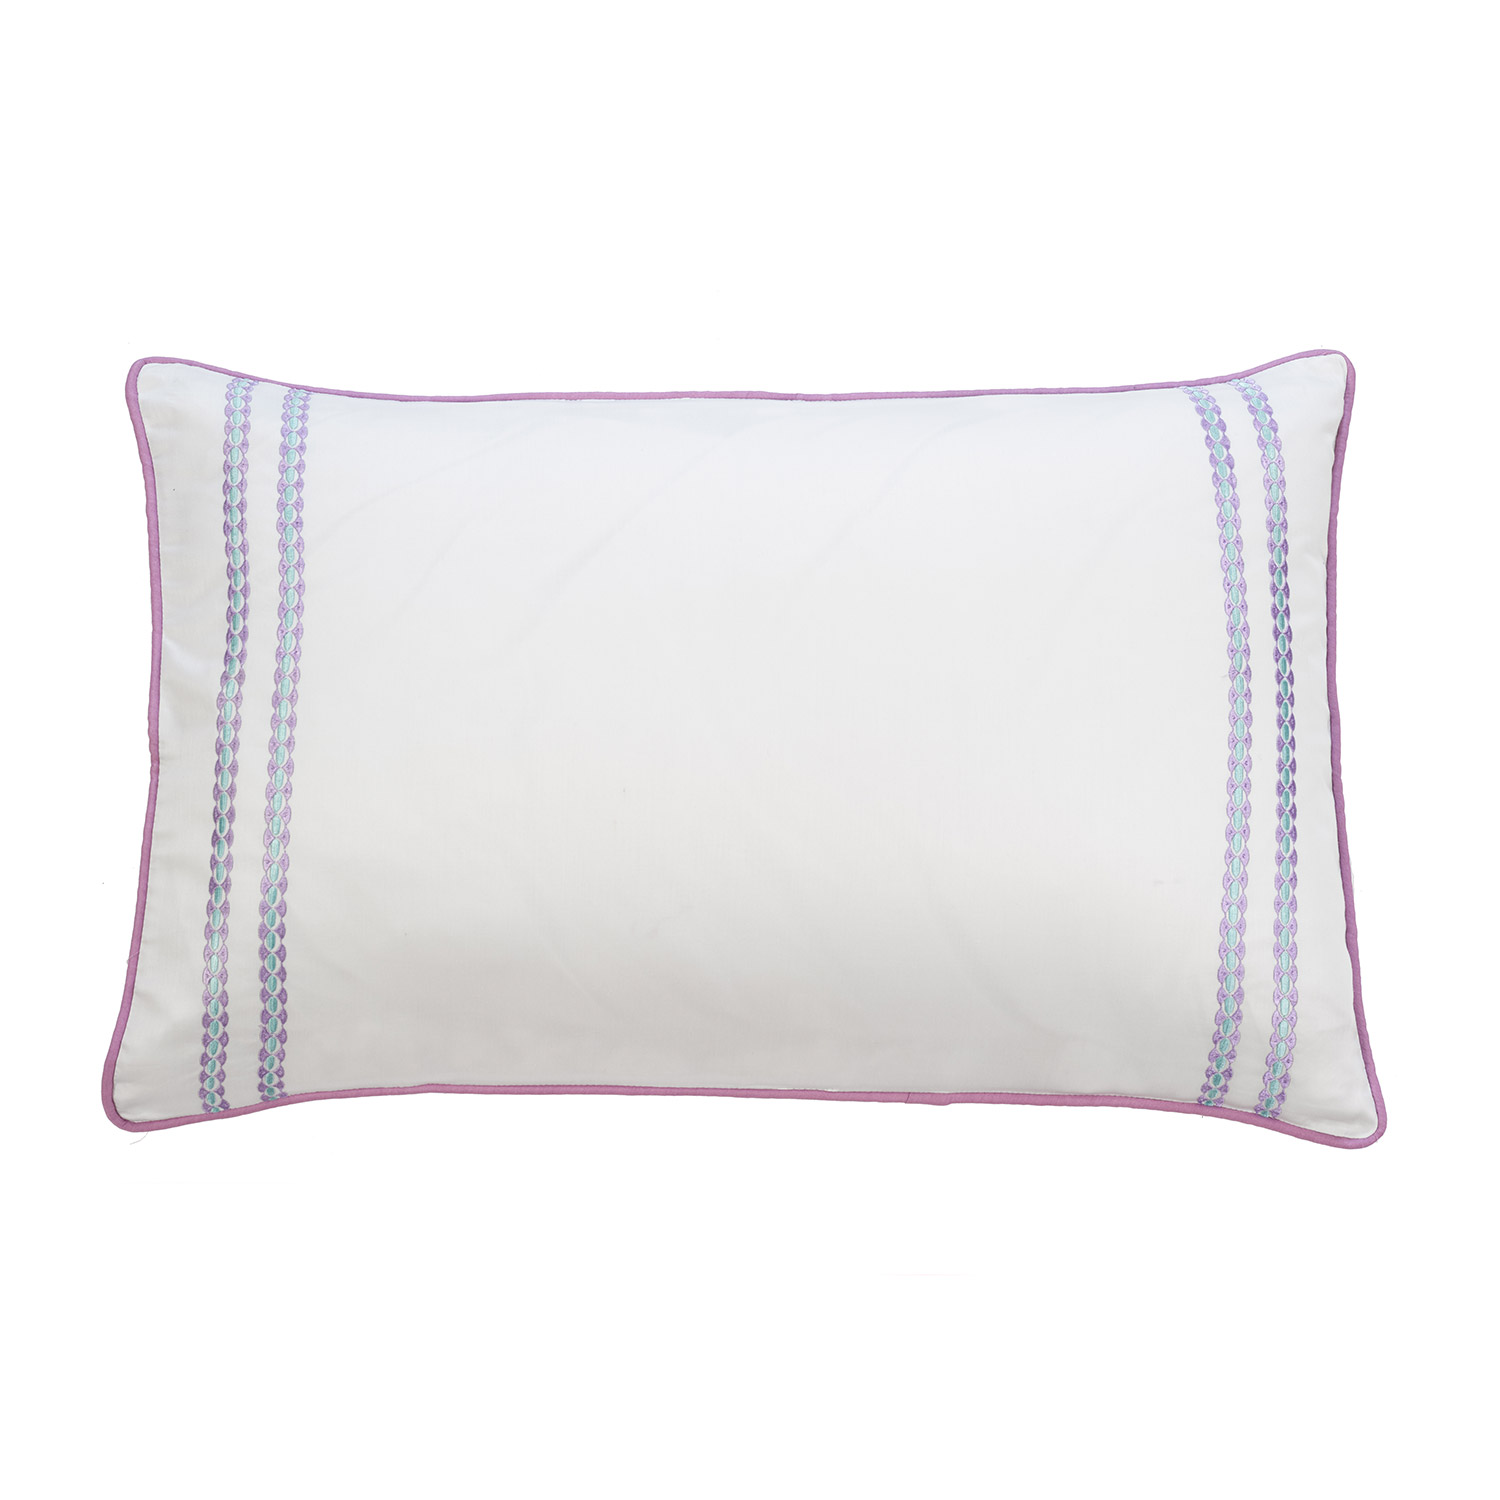 Stockists of Abigail Duck Egg Pure Cotton Embroidered Housewife Pillow Cases (Pair)